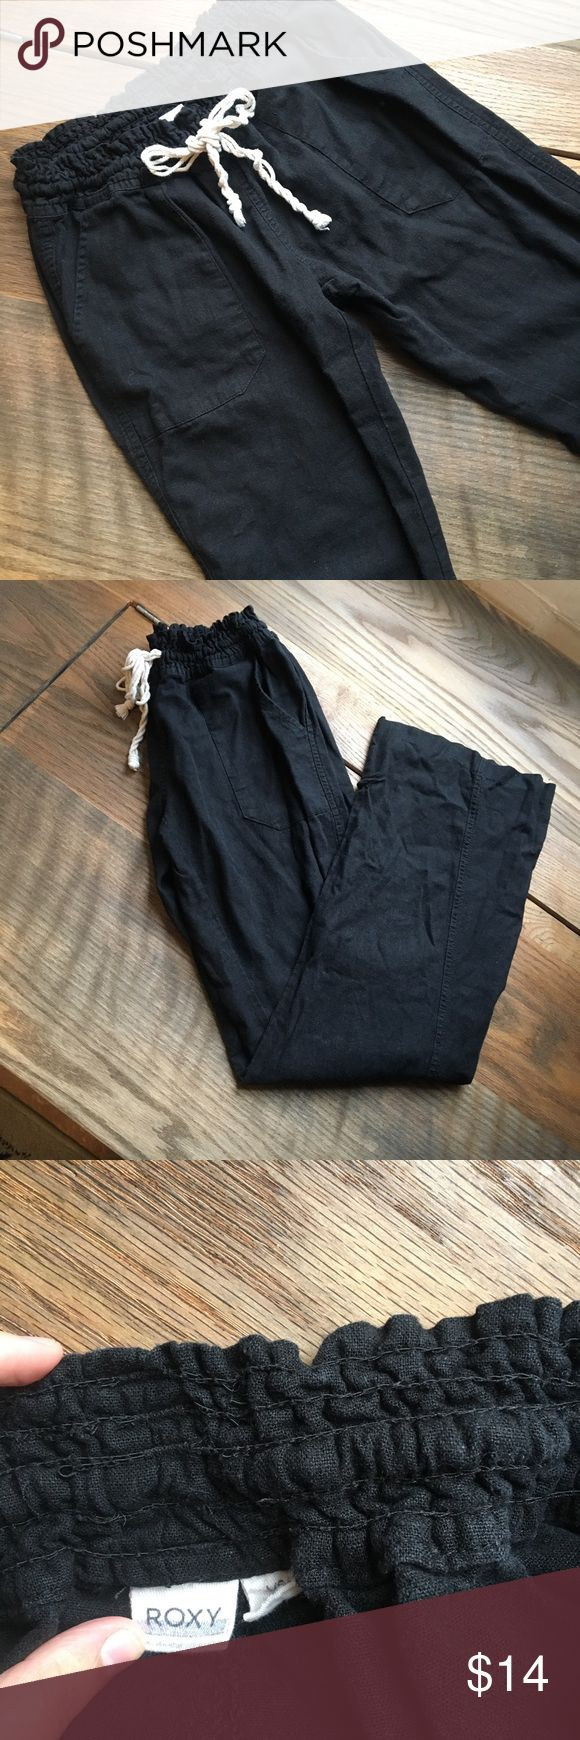 Roxy Linen Pants Black linen pants (Roxy Brand) super comfy, good condition. Large. Roxy Pants